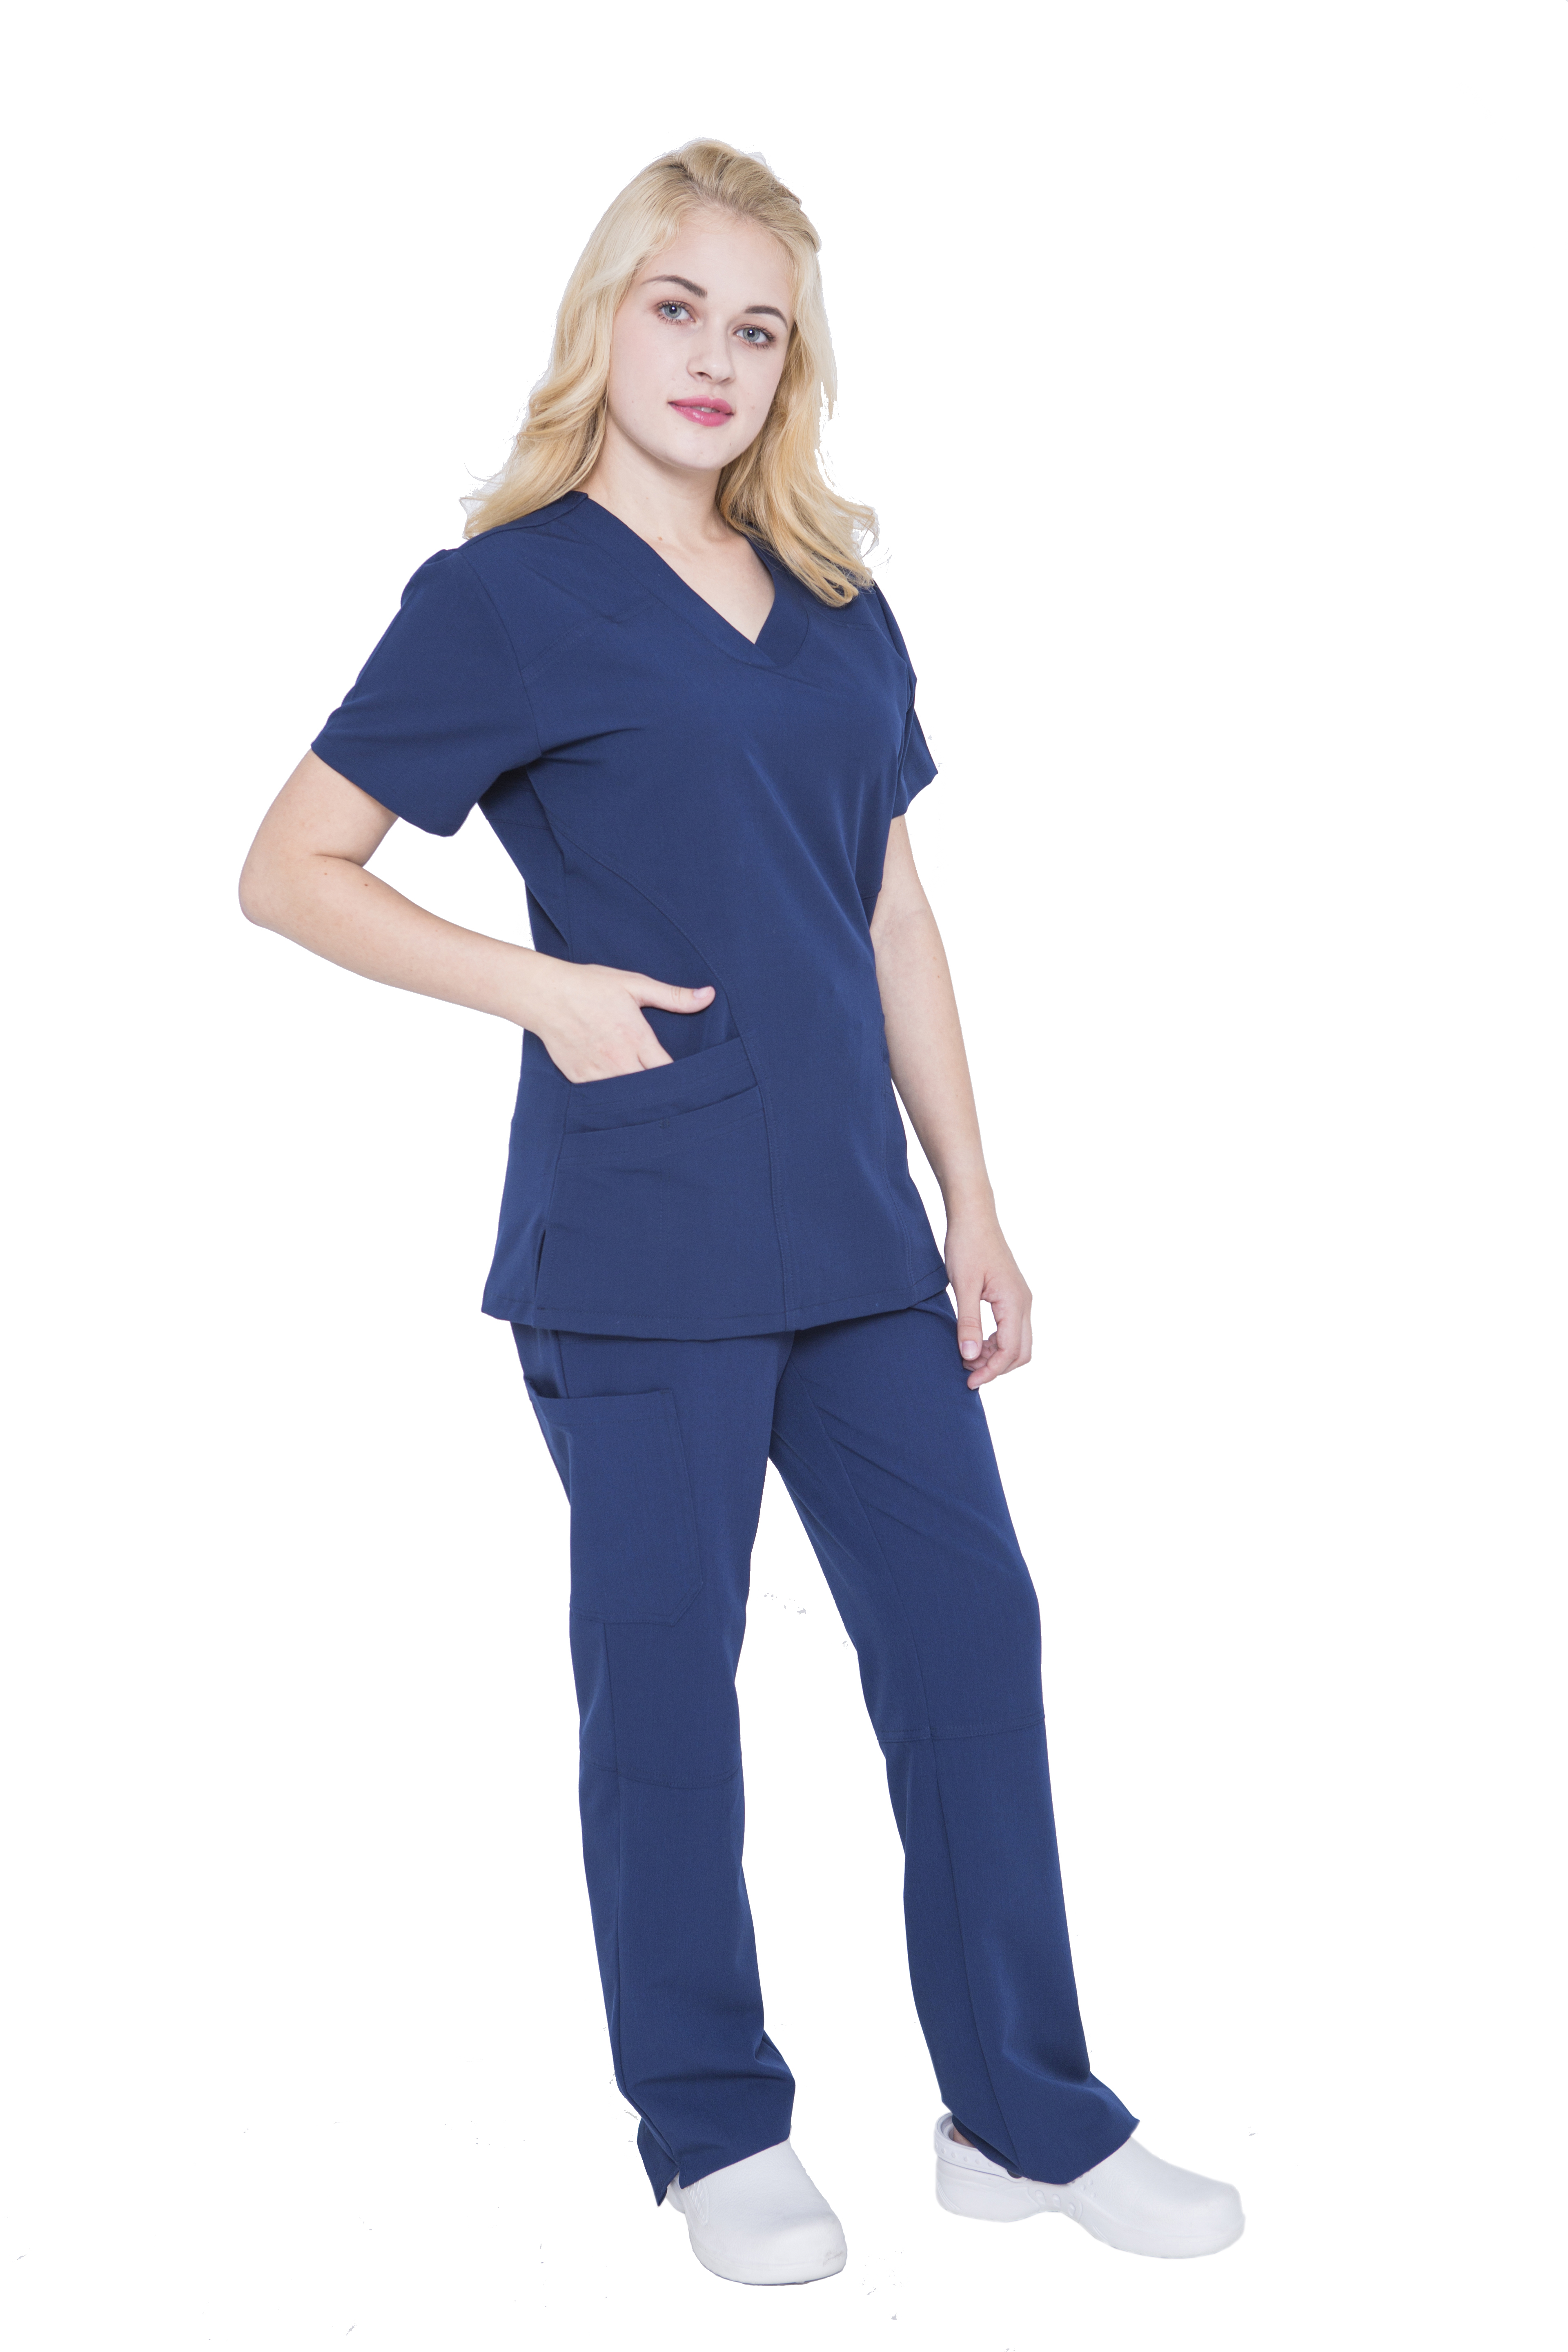 Women V Neck Stretch Scrubs Set - Pandamed Women Medical Uniforms Scrubs TRS3104